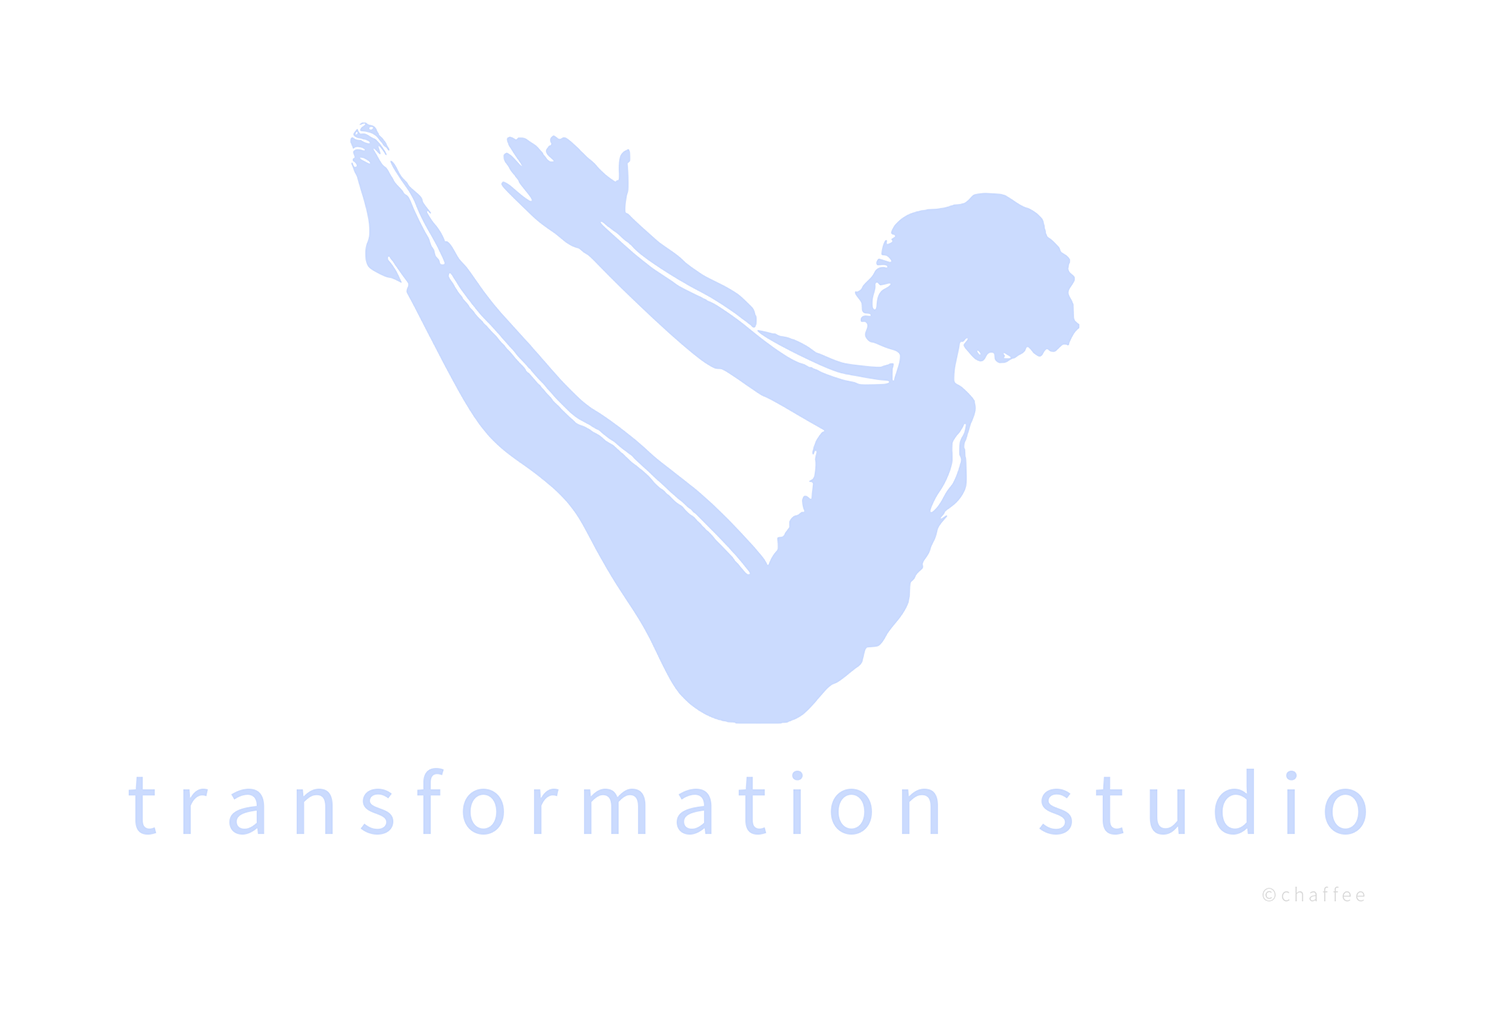 18_chaffee-transformation-studio-2.png